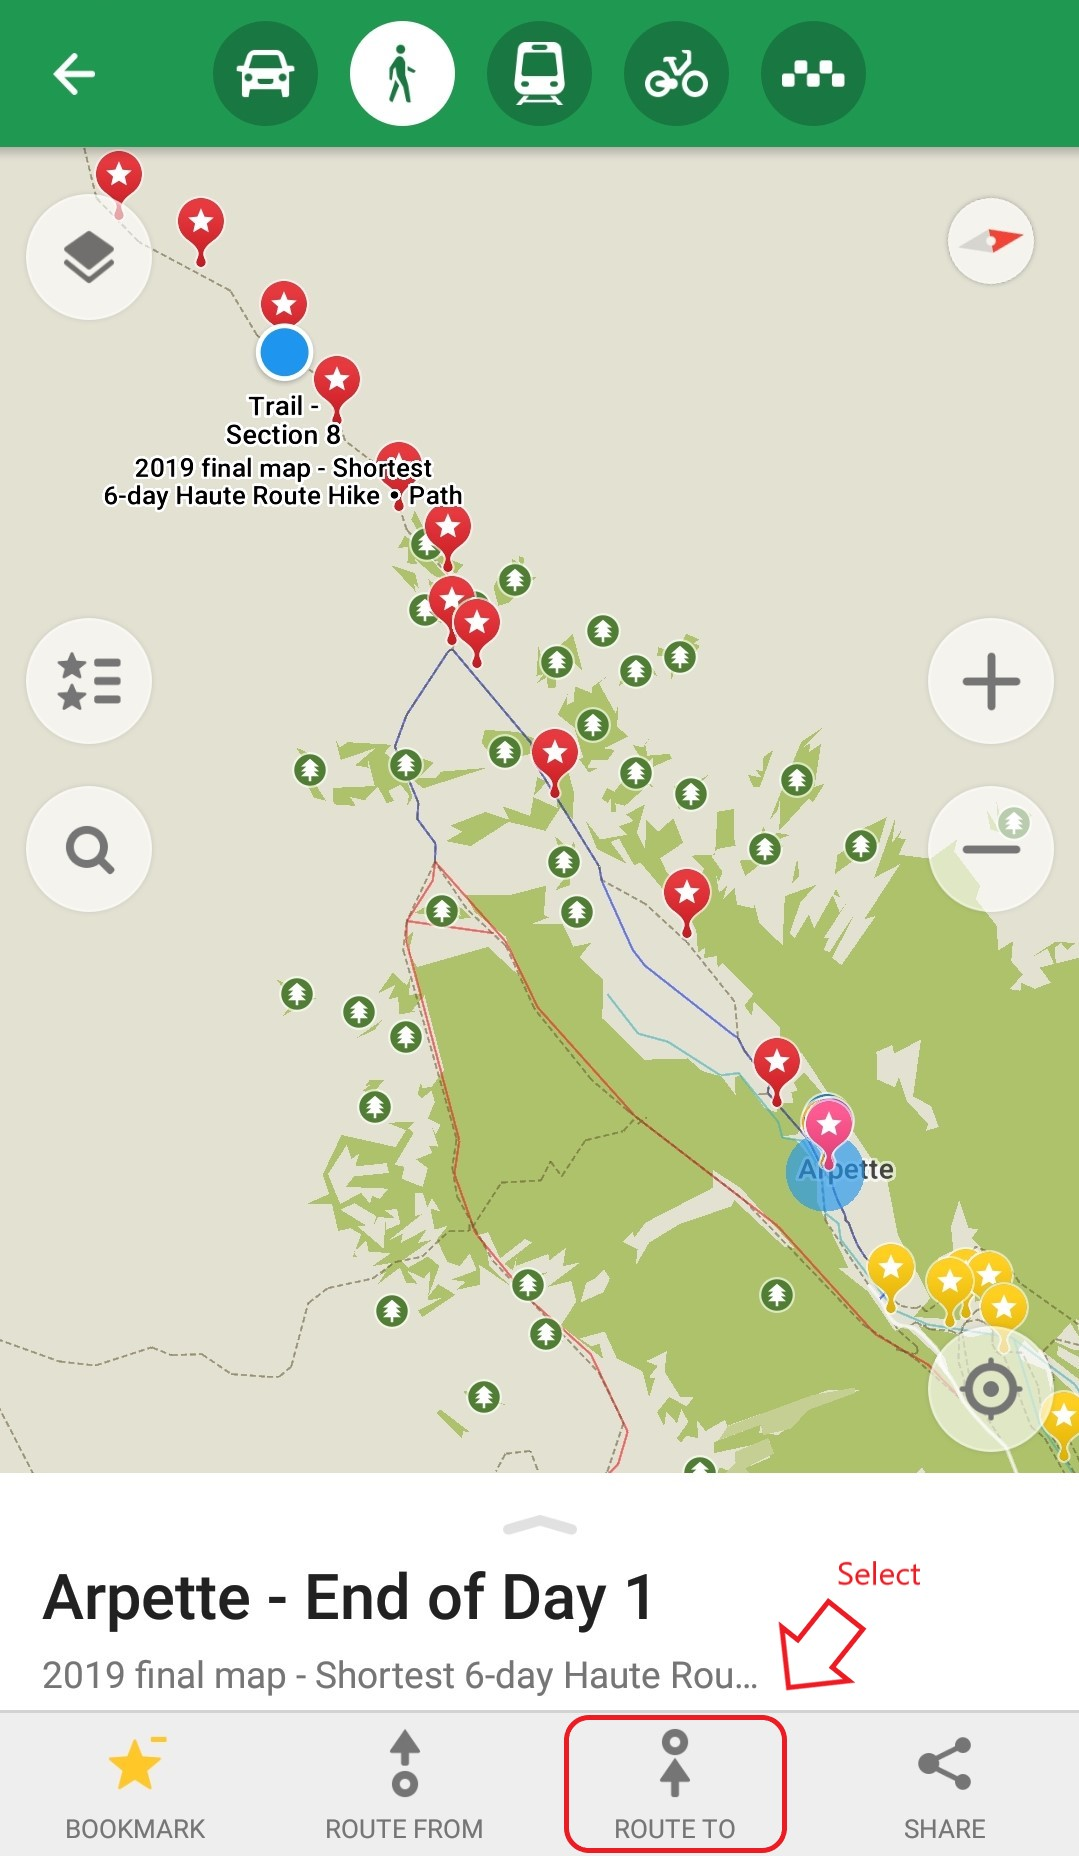 Walker's Haute Route:  When you are on the trail, select the location on the map you'd like to calculated the distance to and then click 'Route To'